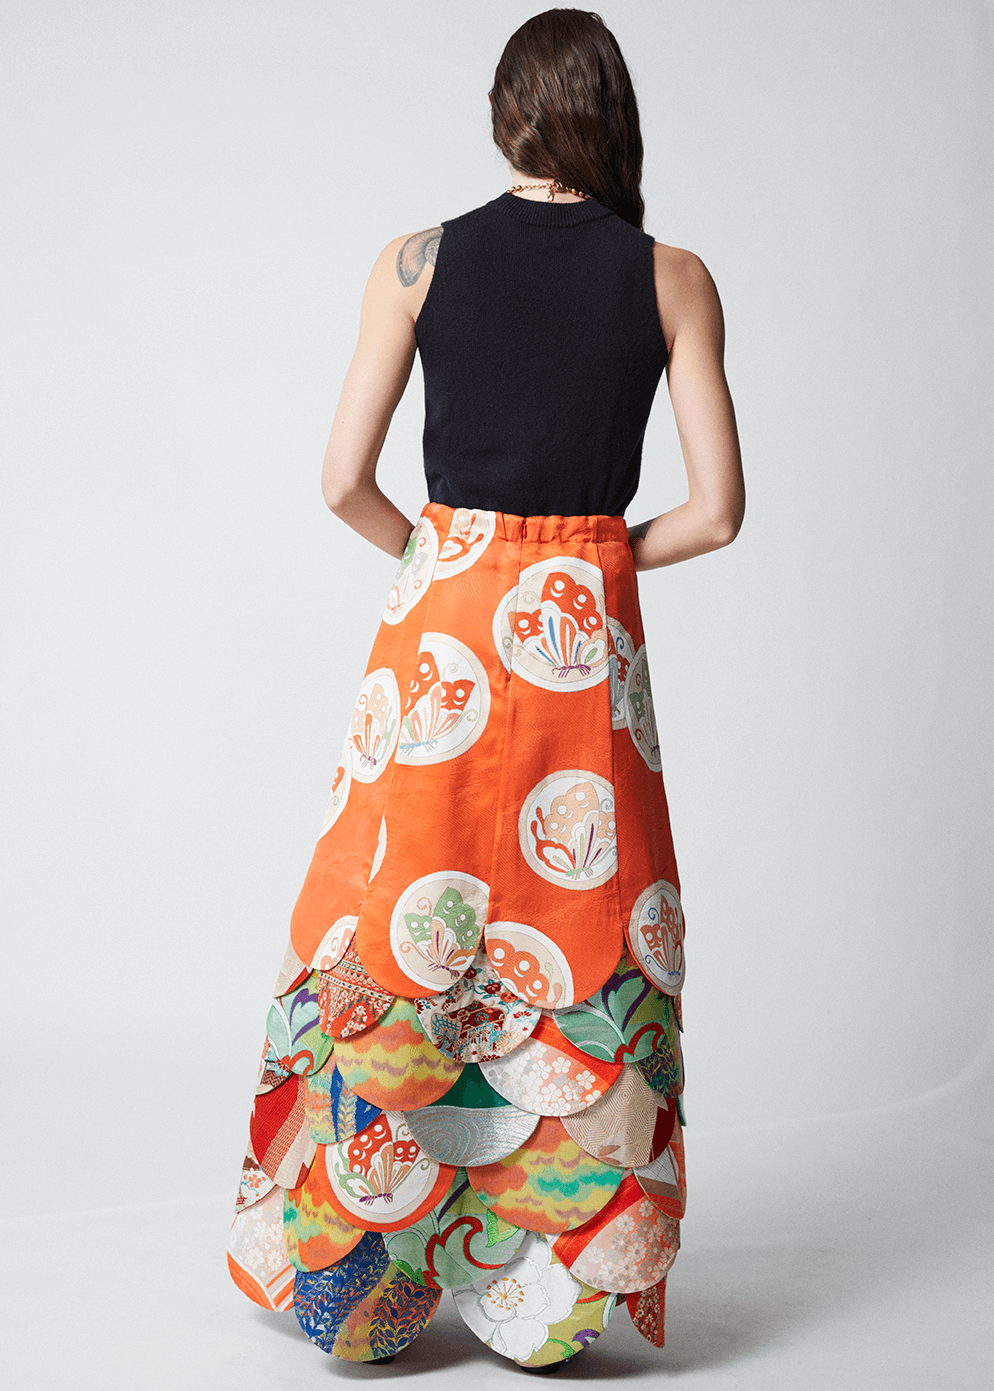 One-of-a-kind Mermaid Skirt Exclusive